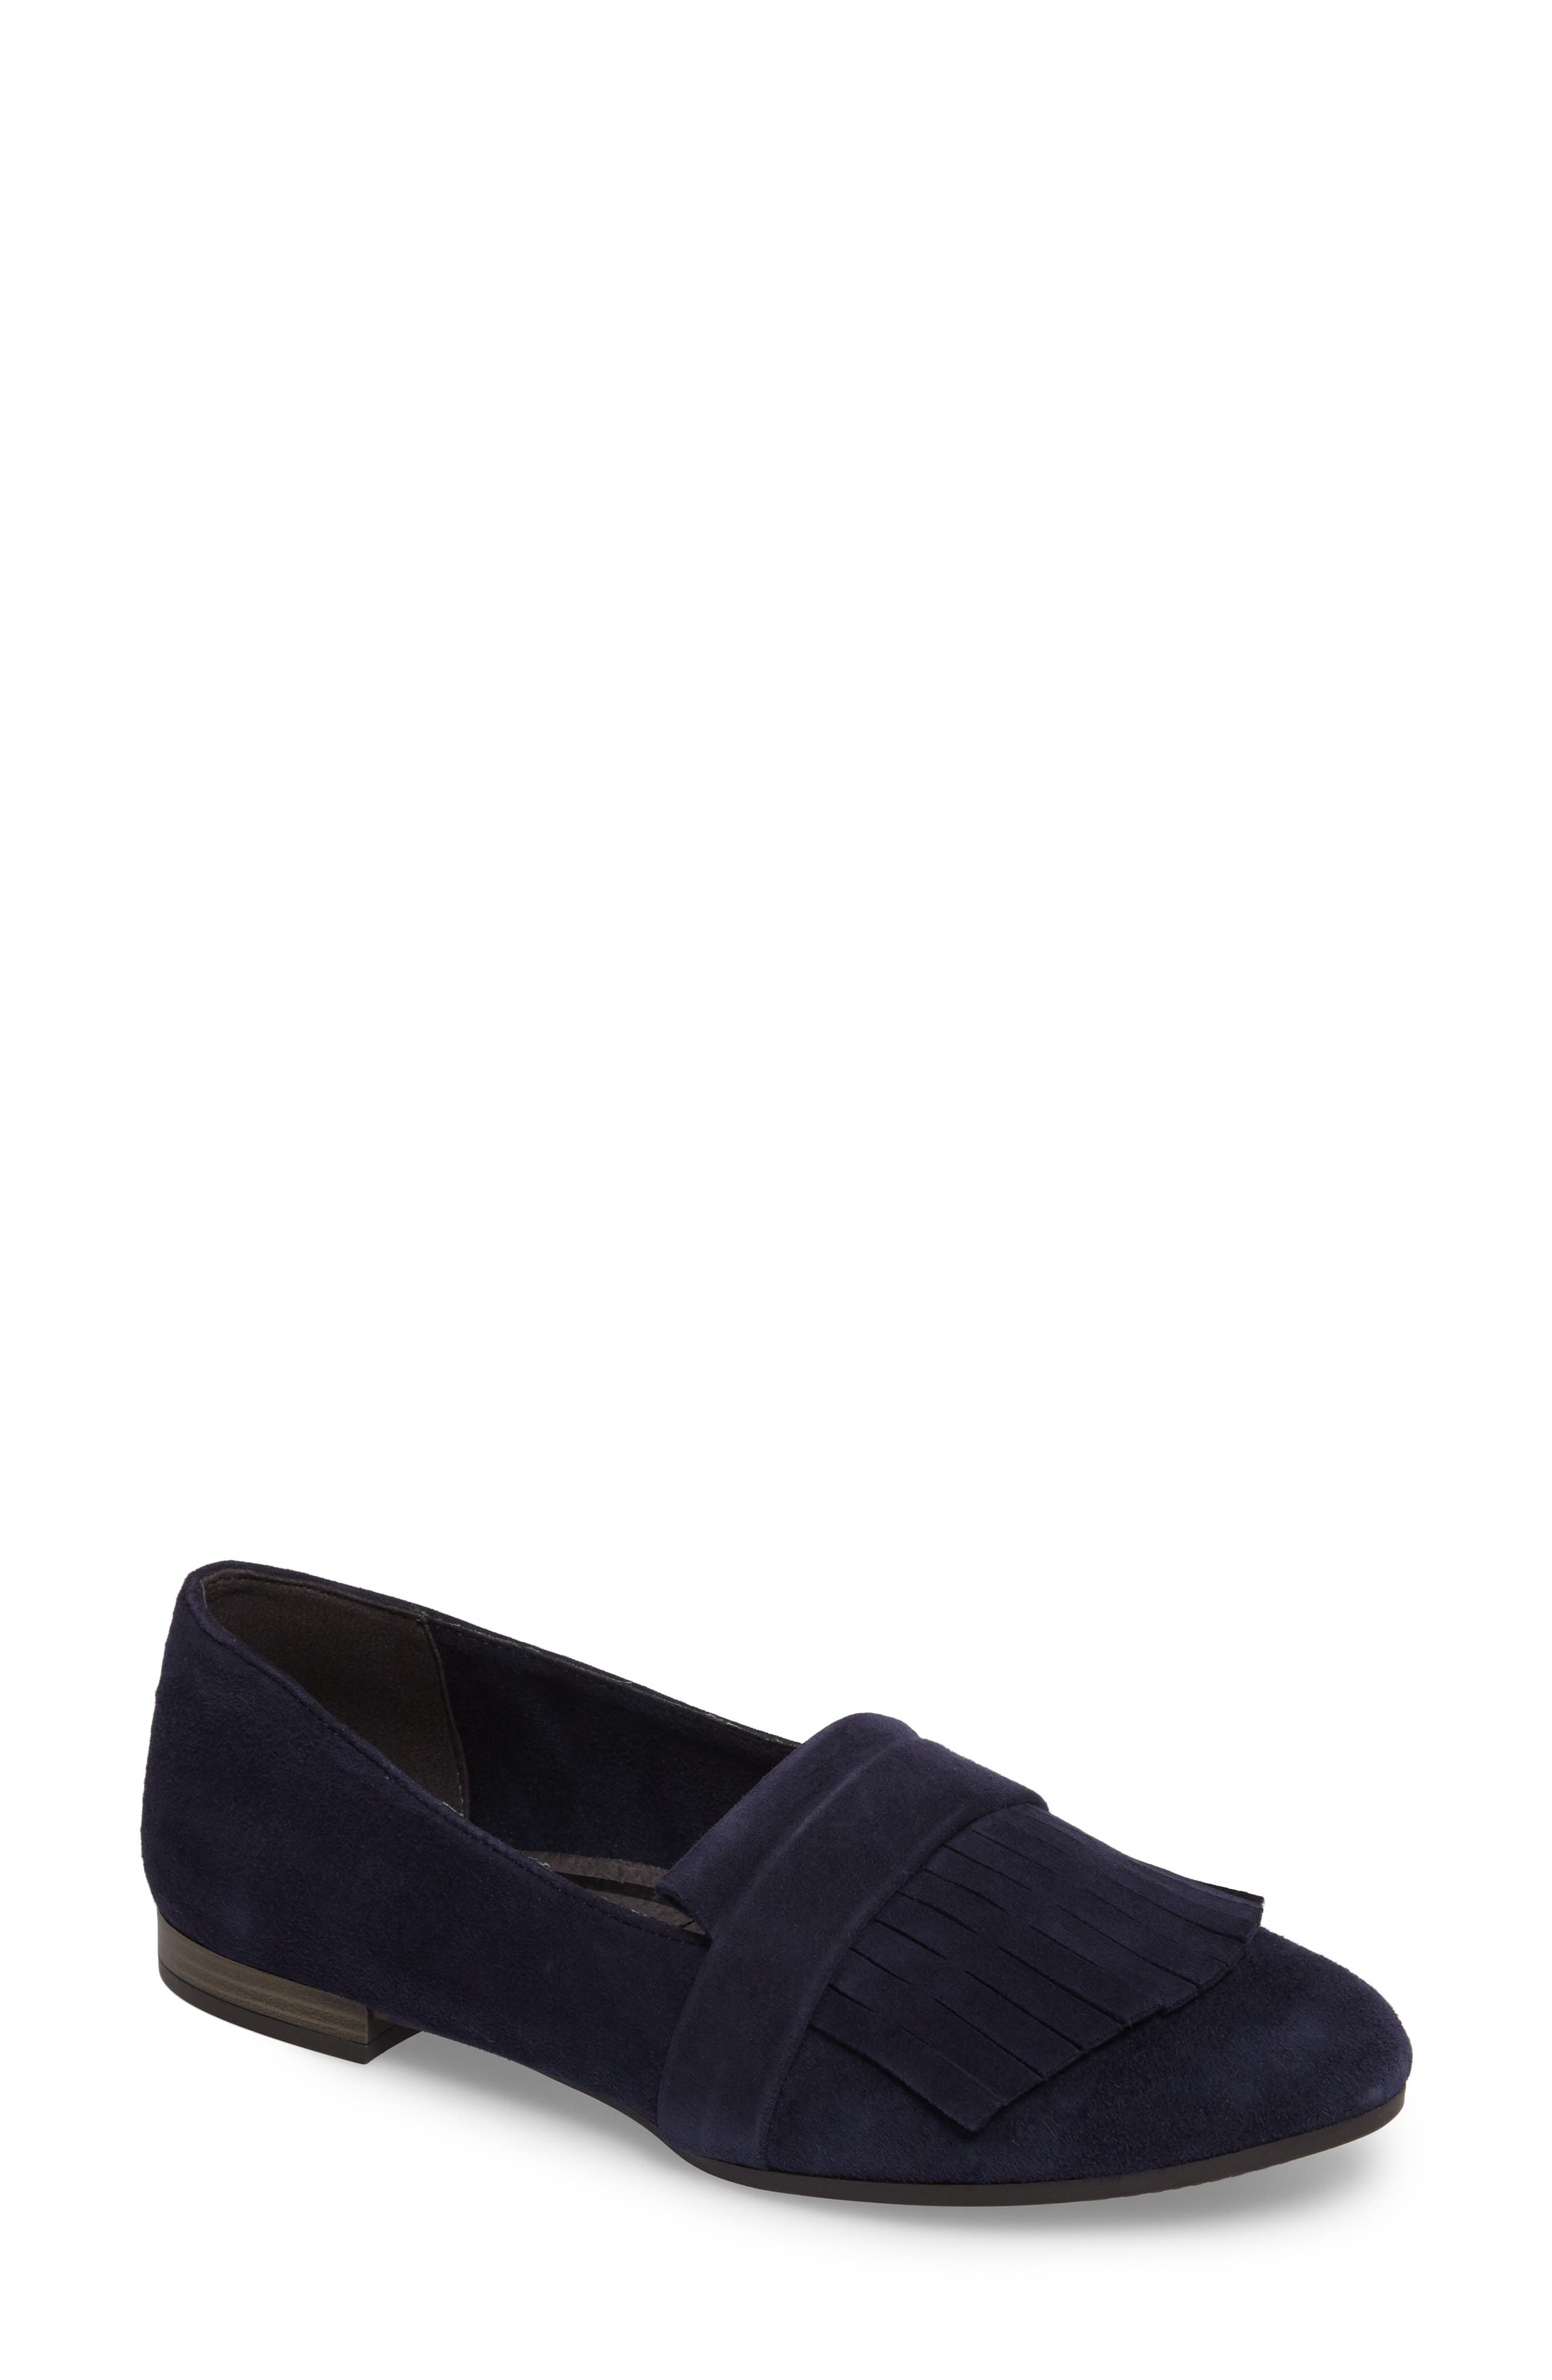 Tamaris Alena Fringe Loafer (Women)